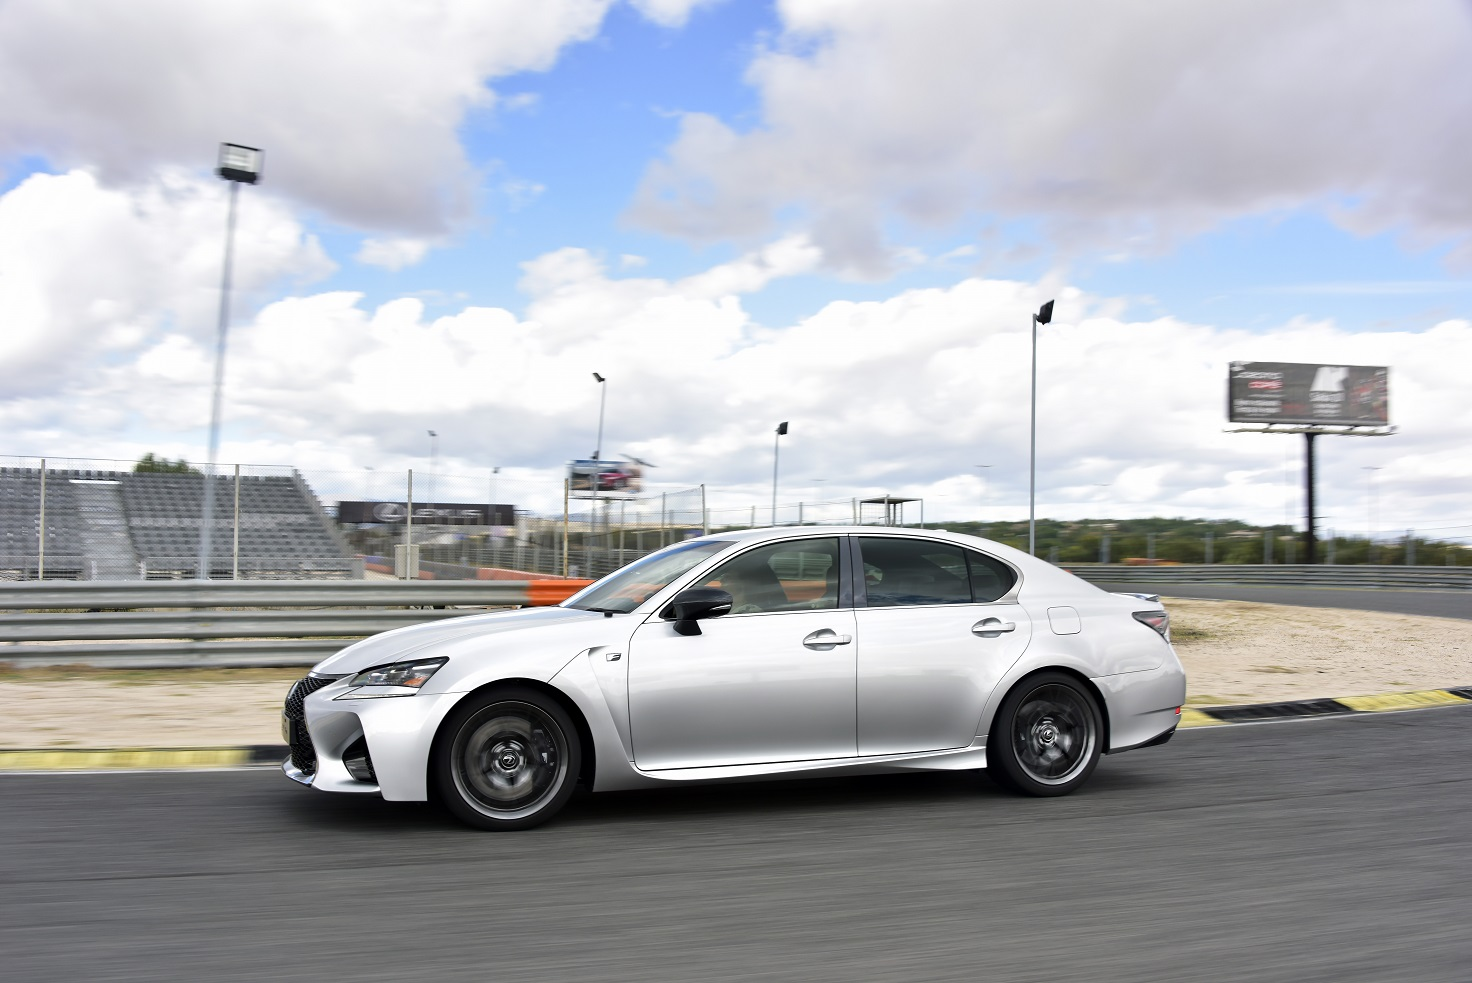 La berline haute performance Lexus GS F 2017 : l'authentique plaisir de conduire